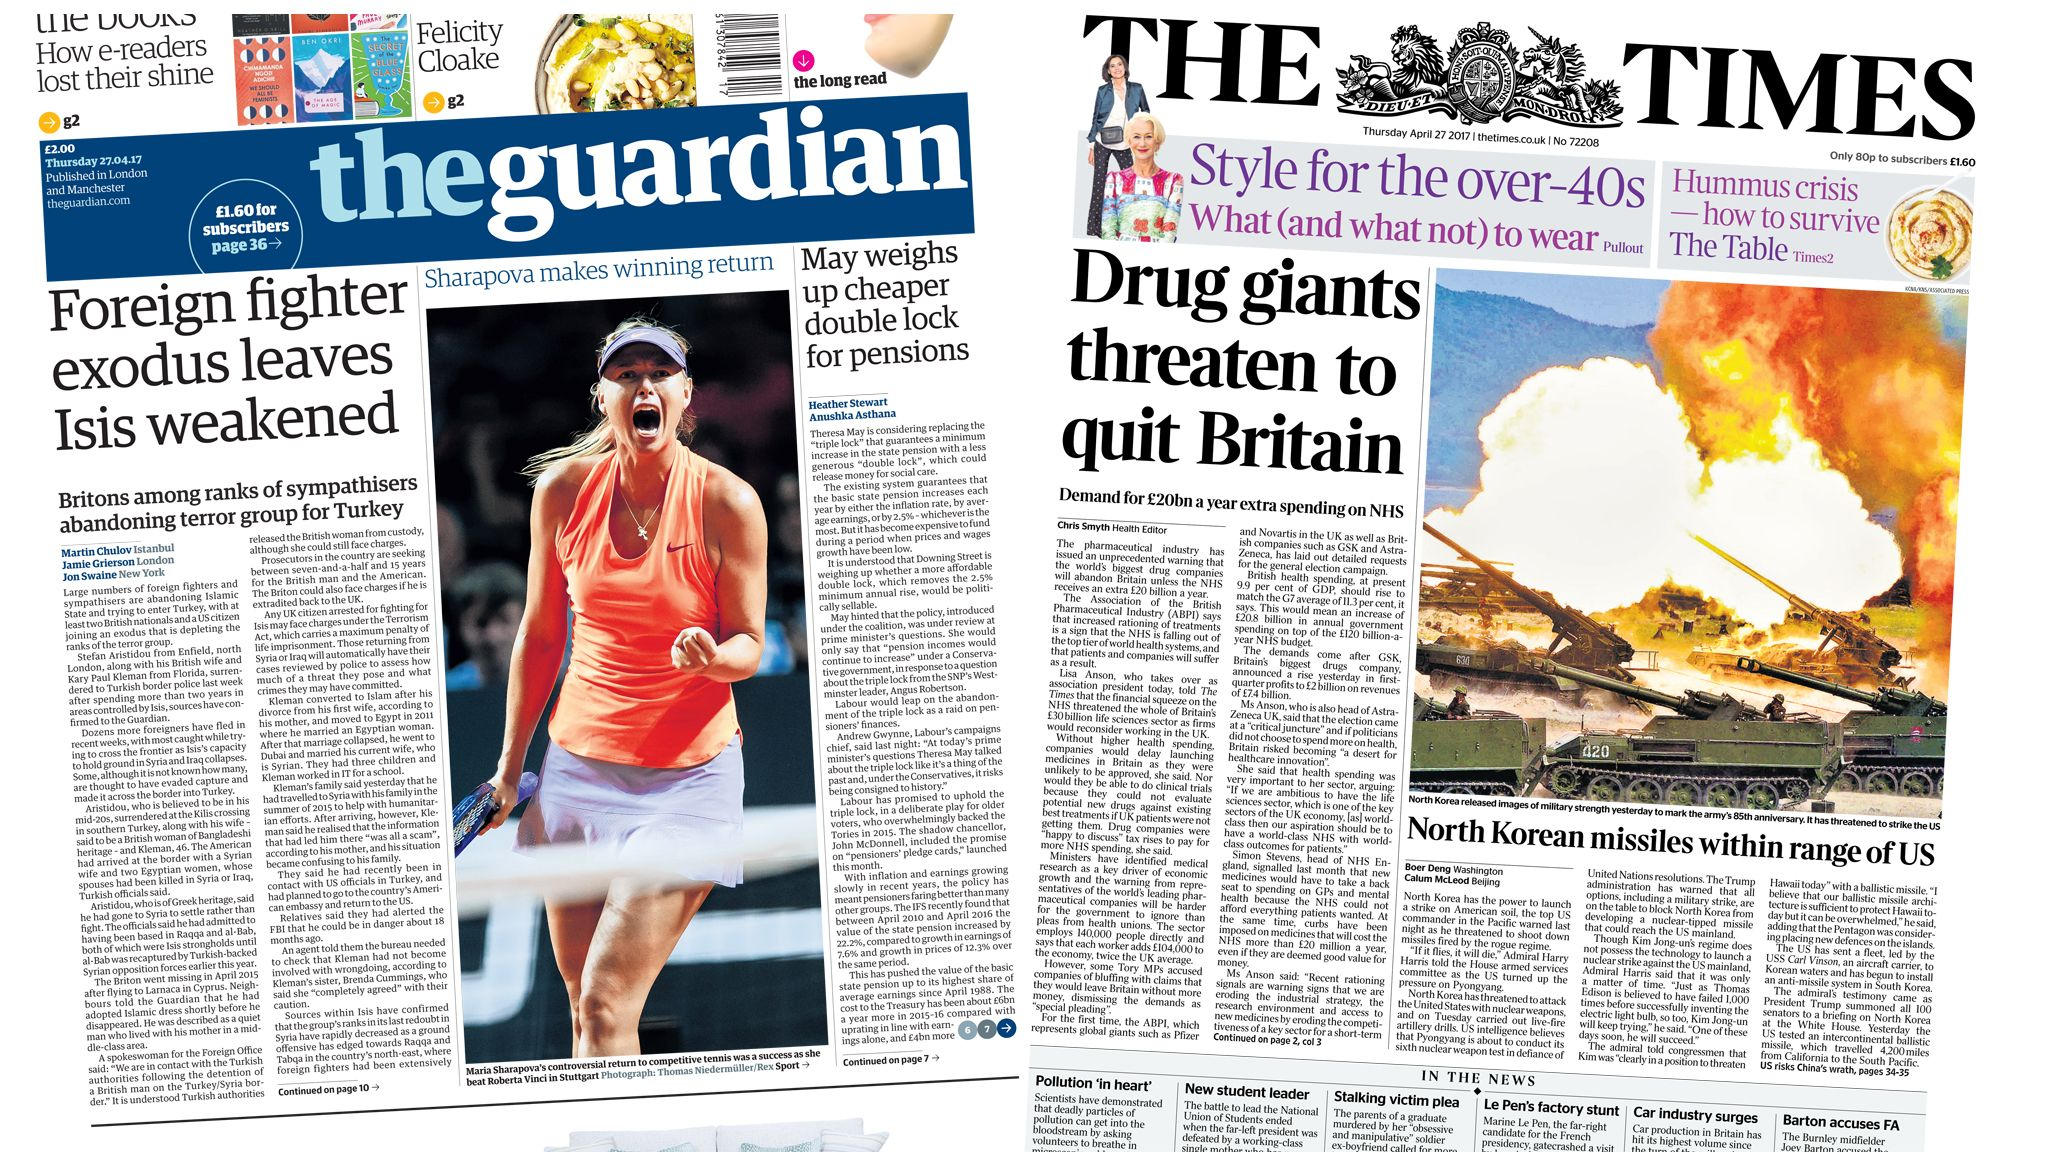 Guardian and Times front pages for 27/04/17